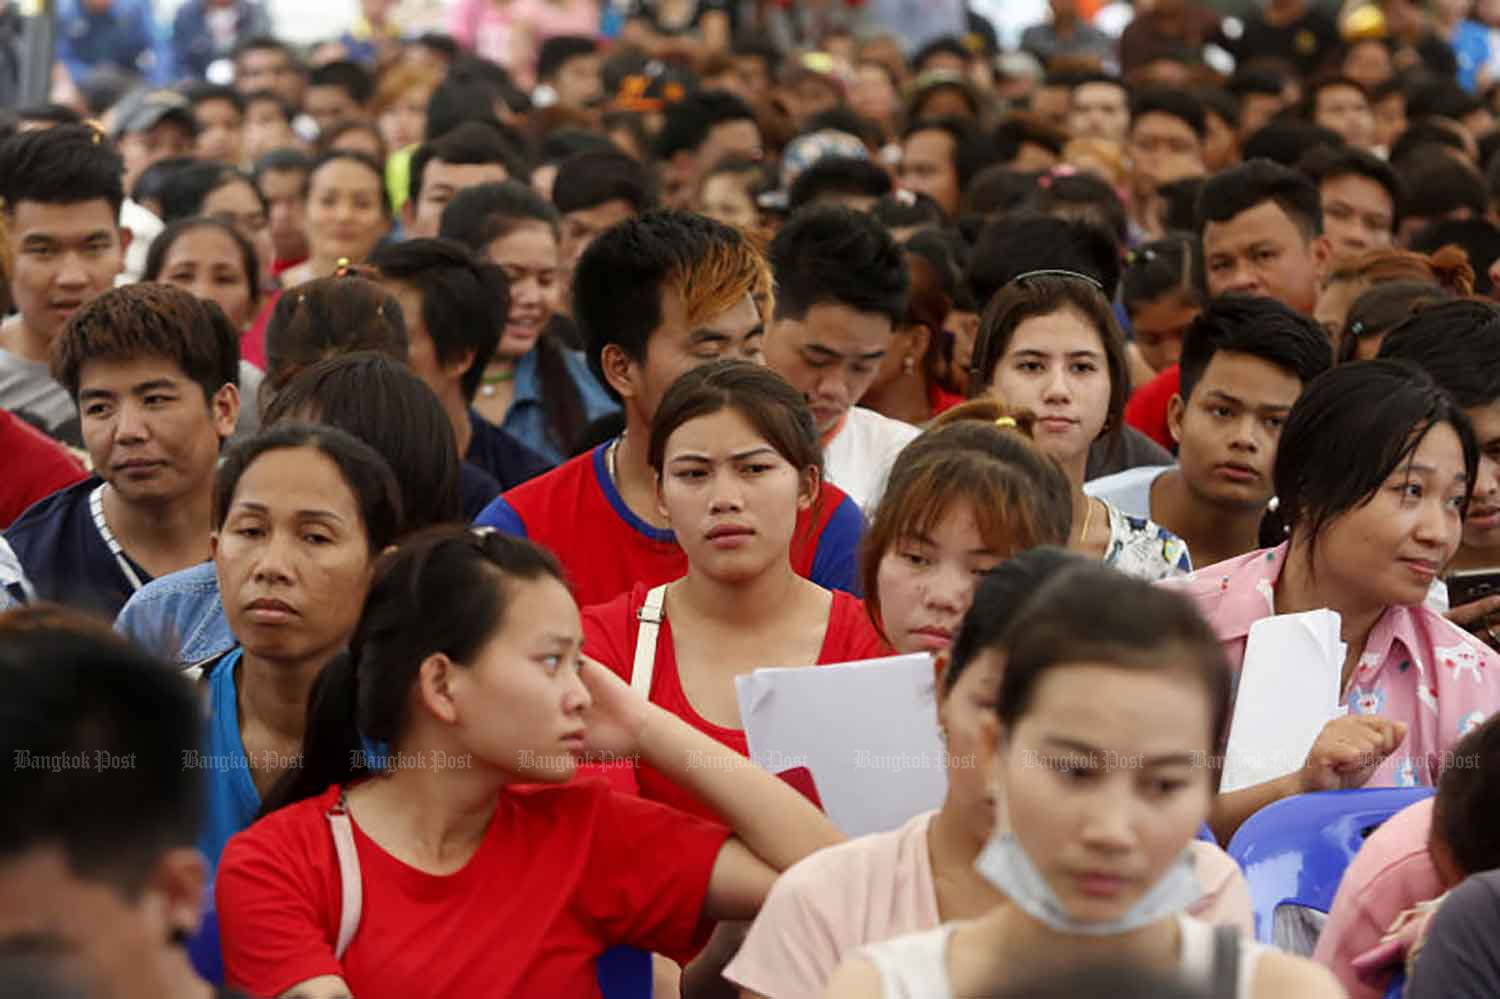 Migrant workers pack the Labour Ministry in Bangkok for registration in March 2018. (Bangkok Post file photo)